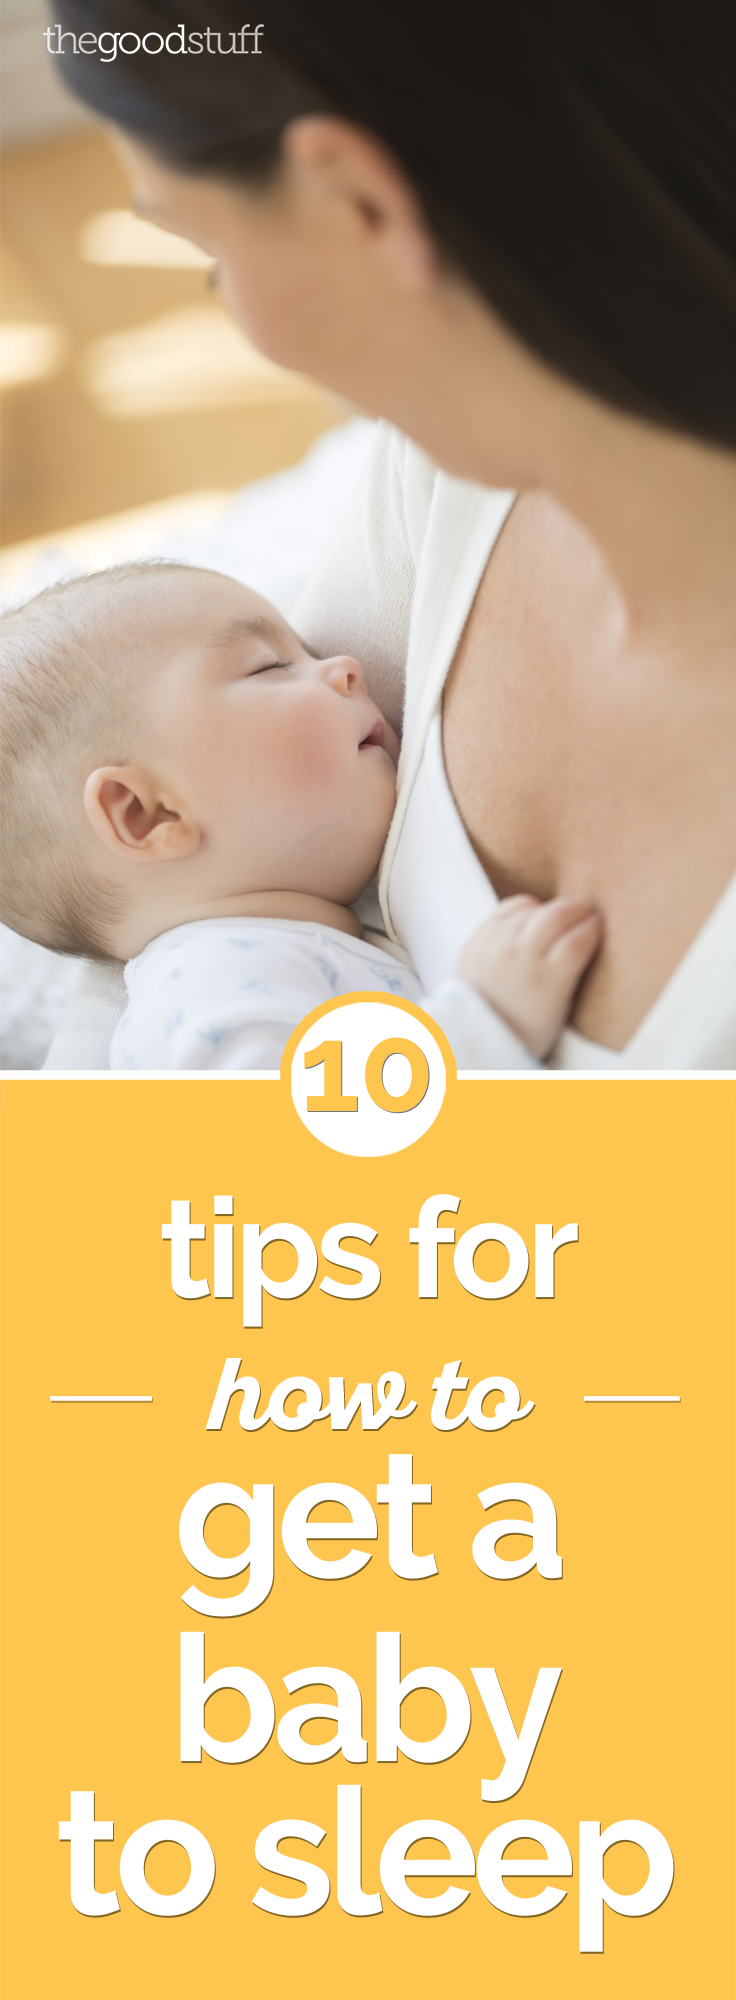 10 Tips for How to Get a Baby to Sleep | thegoodstuff